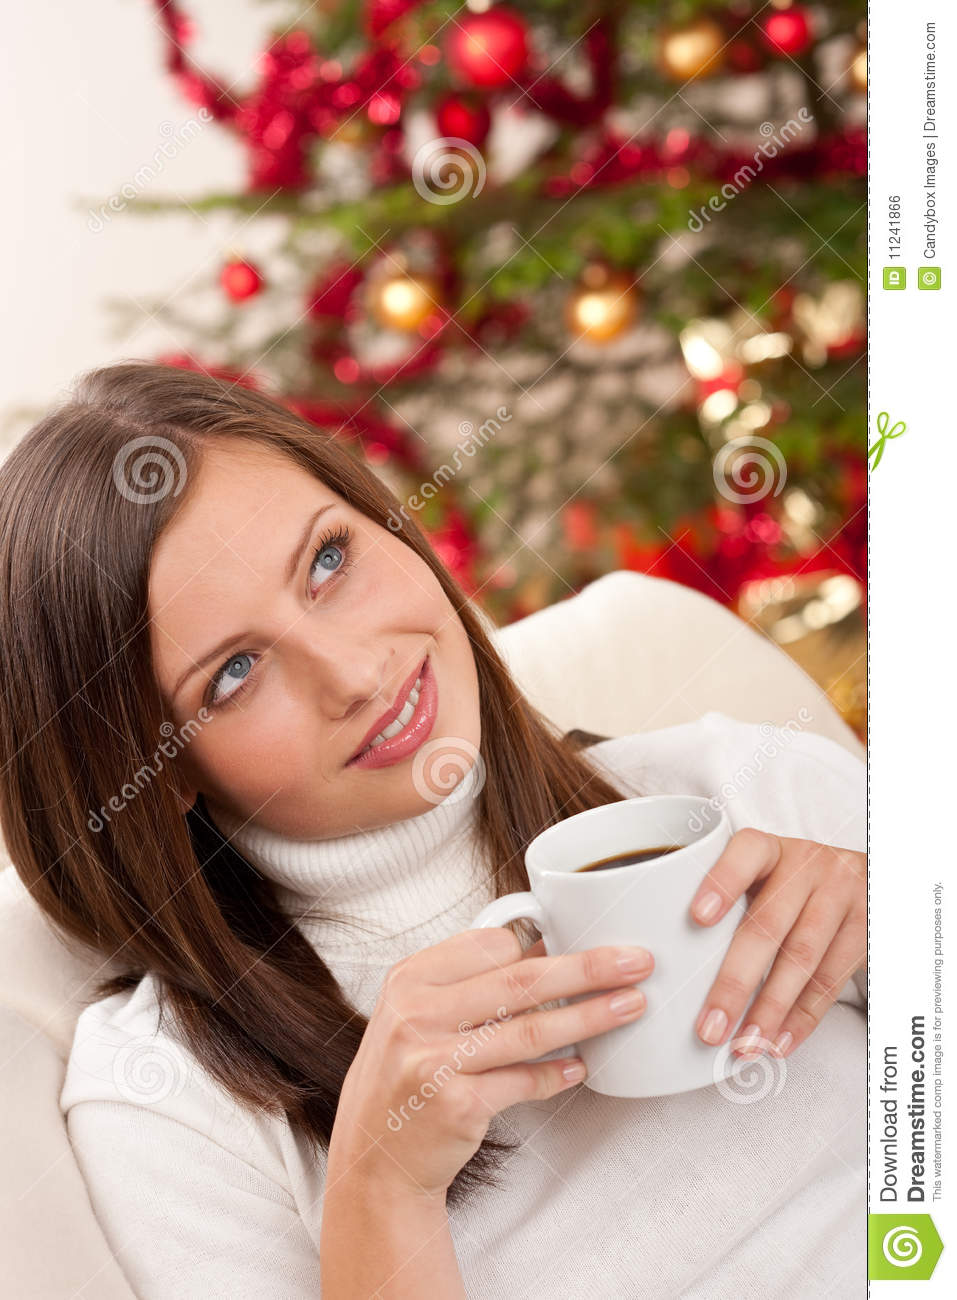 Woman with coffee in front of Christmas tree